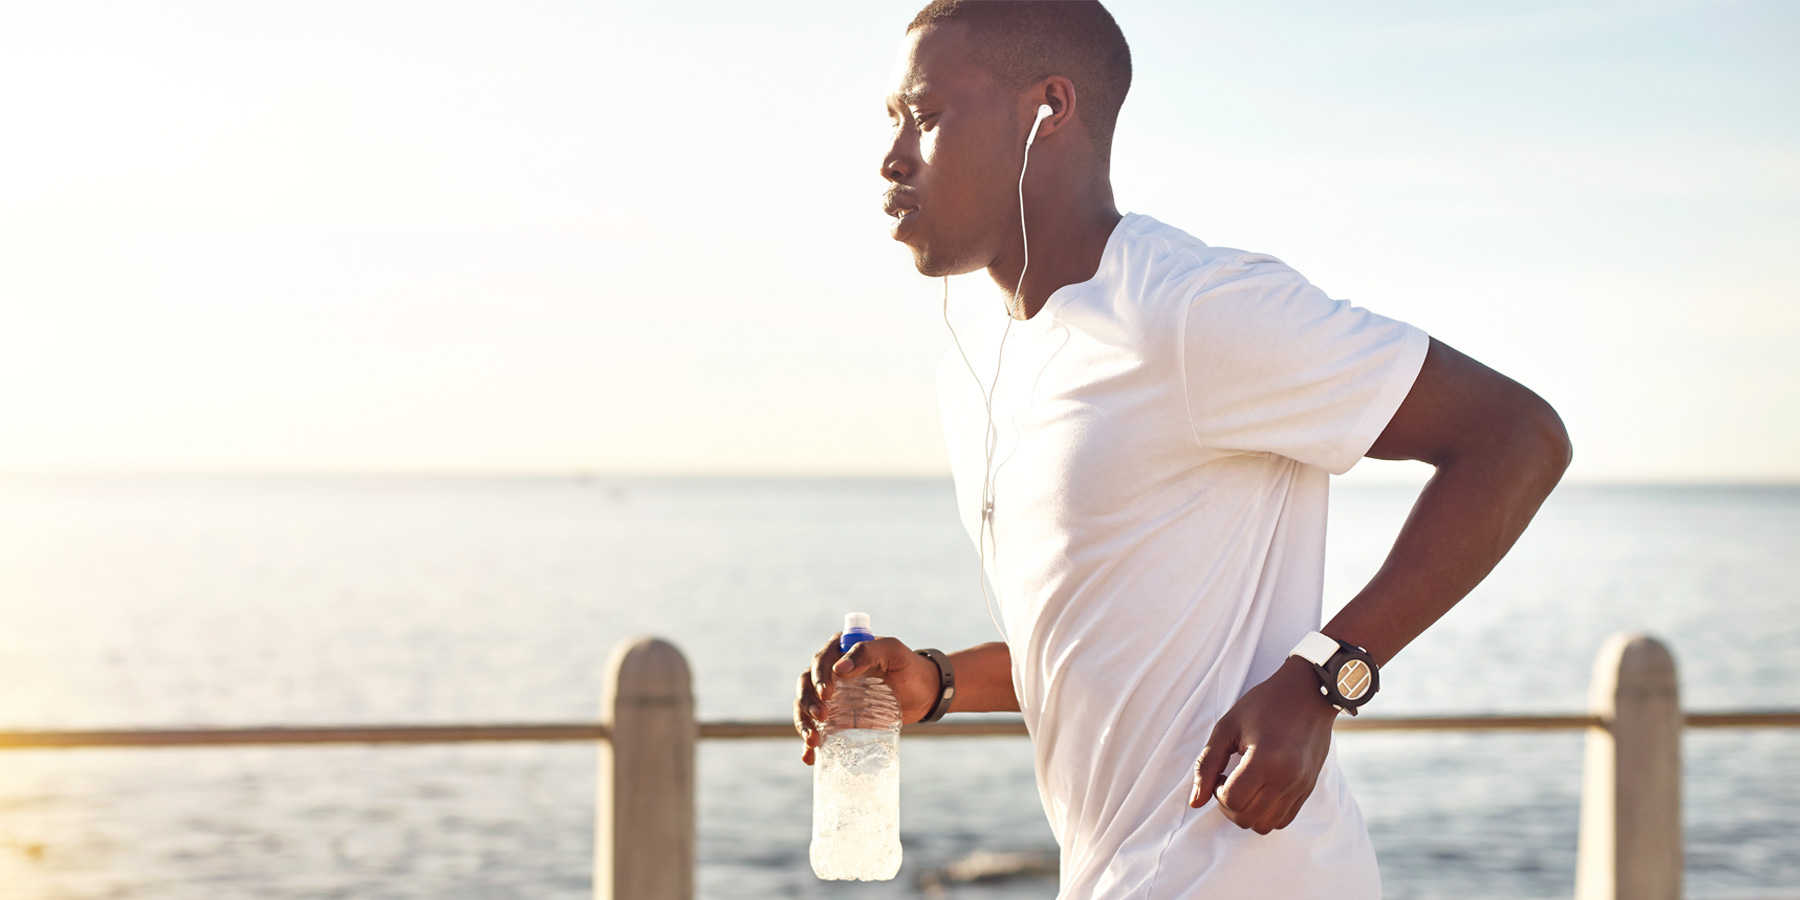 Man running in the evening by the sea, wearing headphones and holding a drink bottle